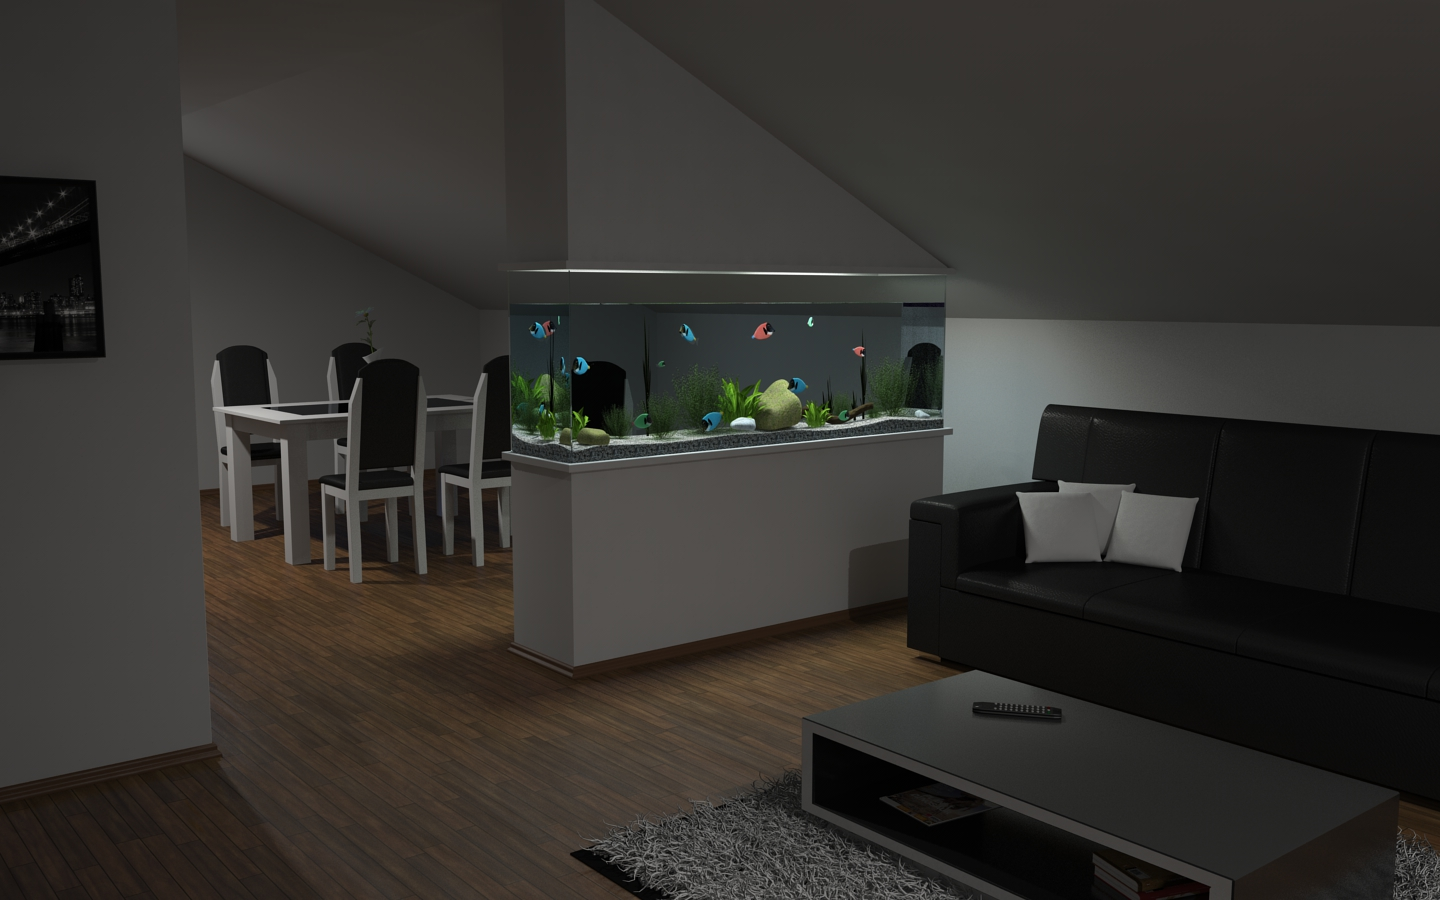 Living room aquarium at evening by slographic on deviantART